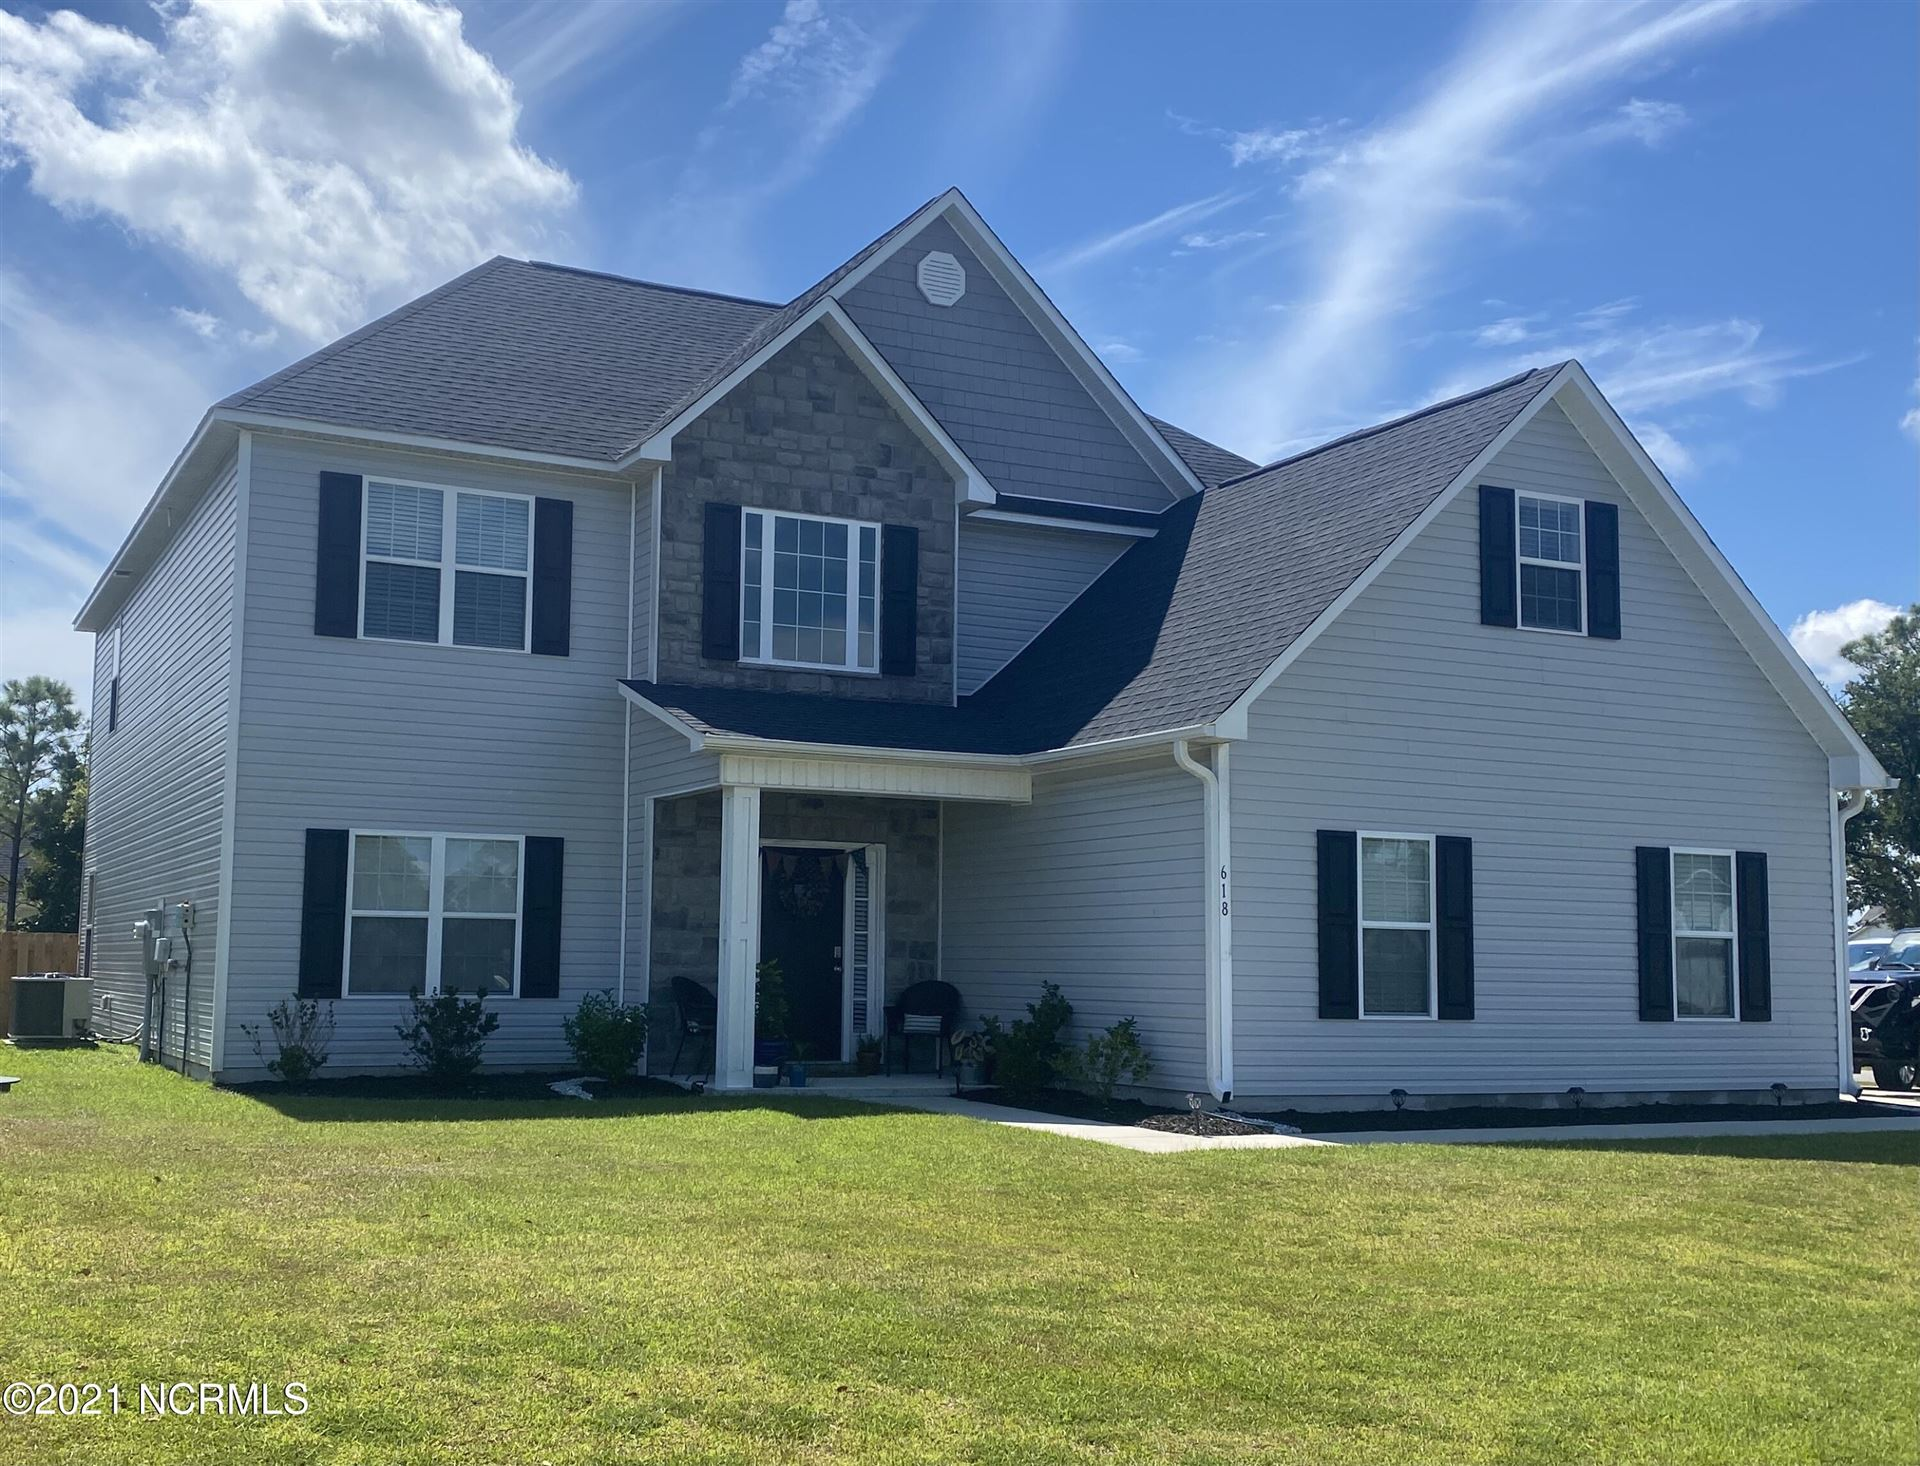 Photo of 618 Prospect Way, Sneads Ferry, NC 28460 (MLS # 100291611)